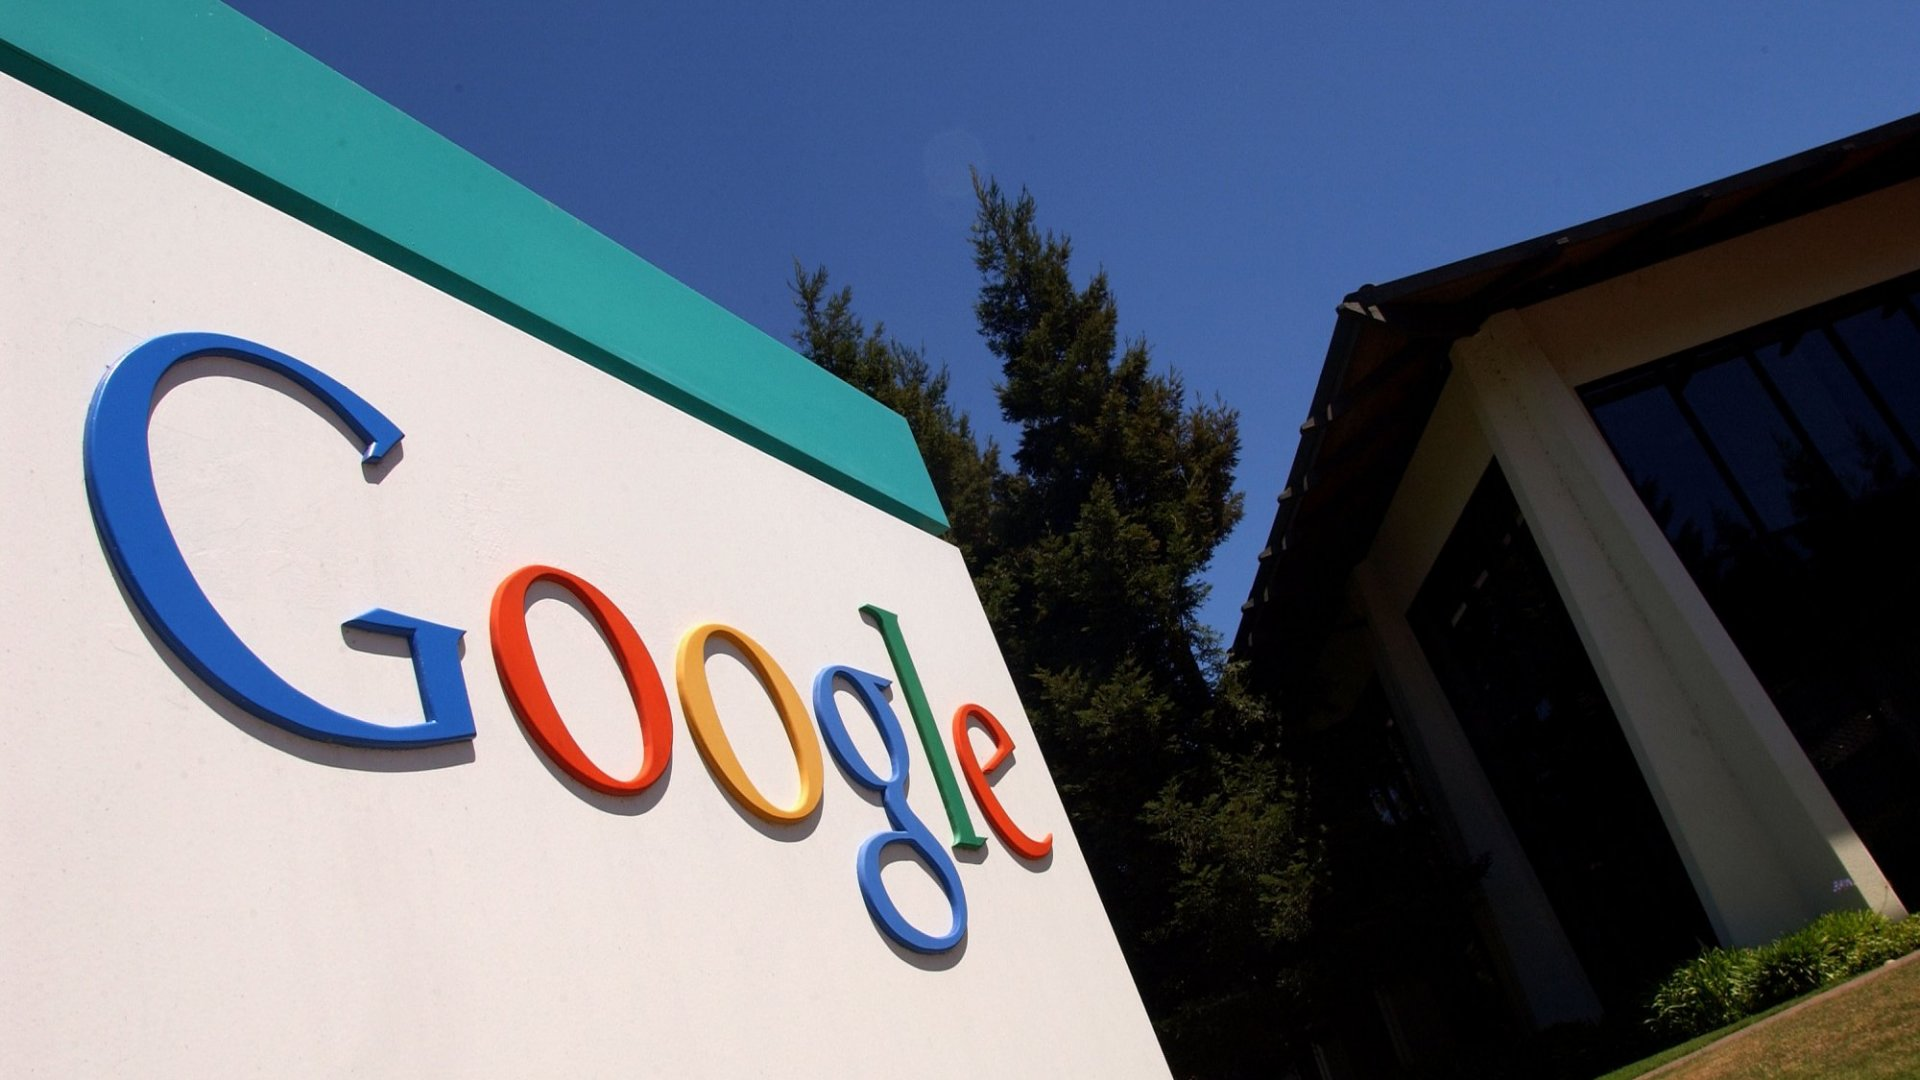 Google Spent 3 Years Finding Out How to Get More Employees to Refer New Candidates. Here's What They Learned